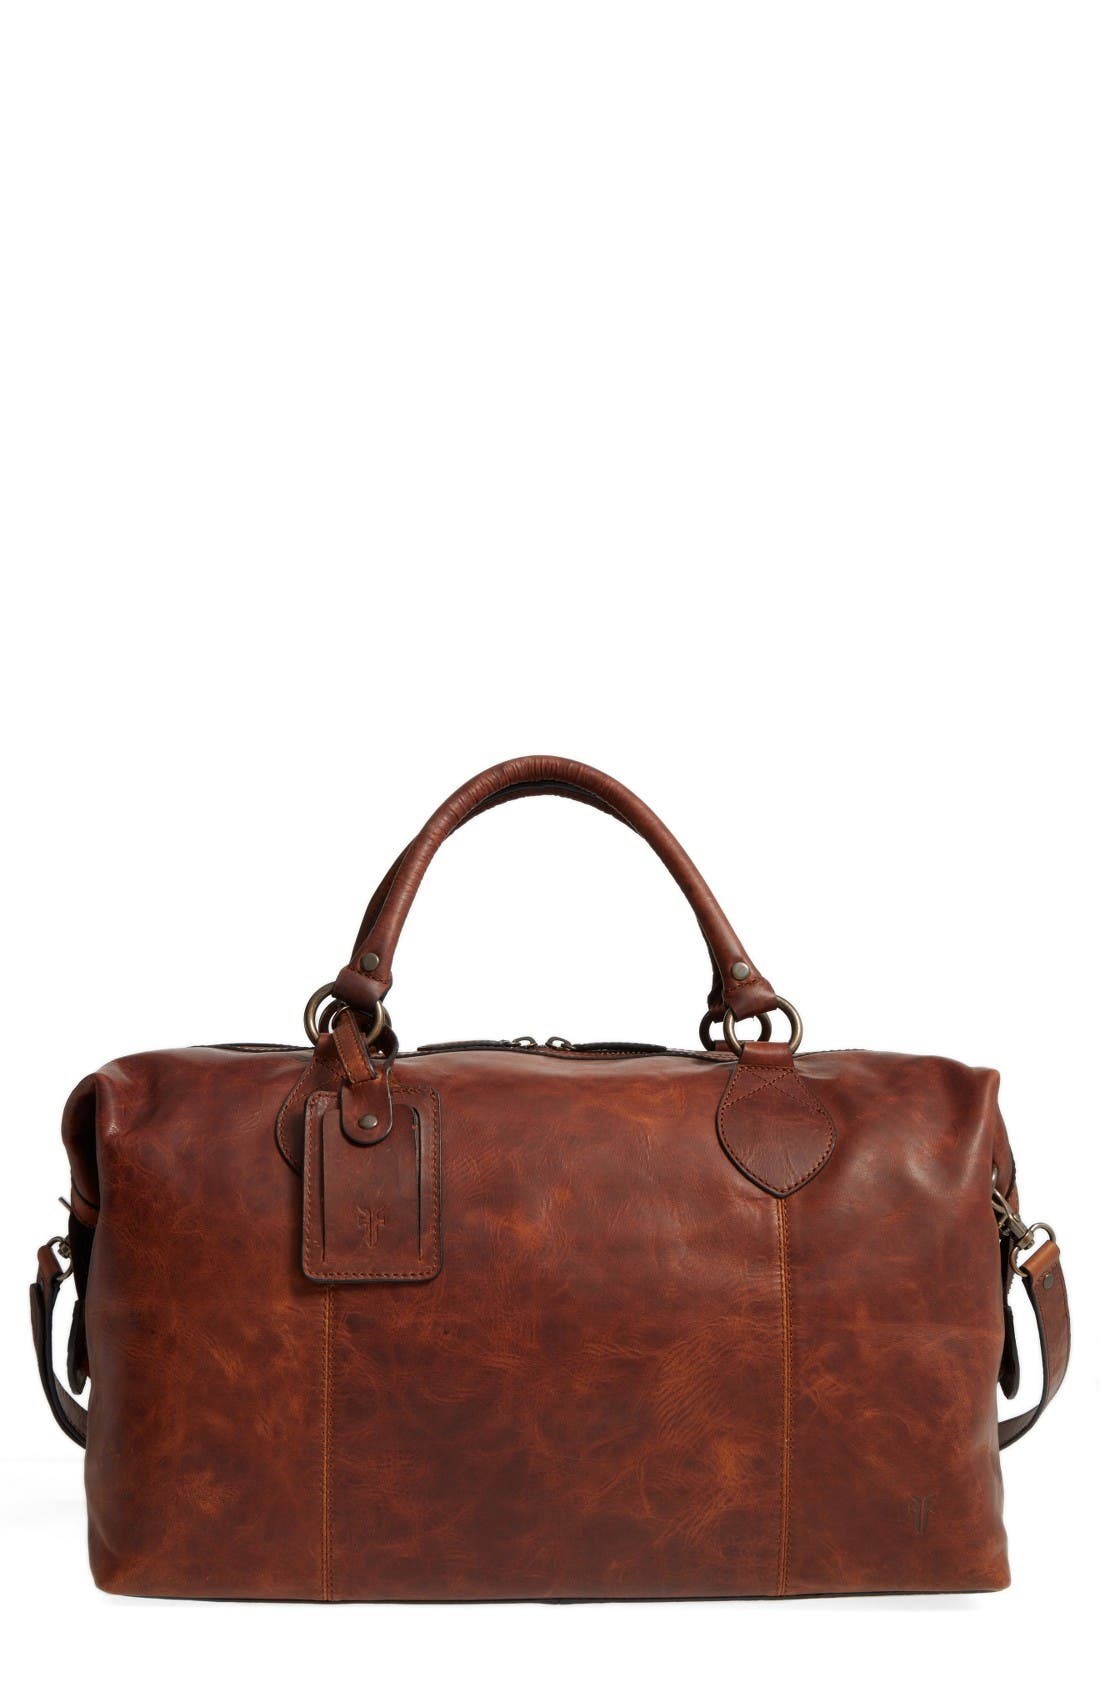 FRYE 'Logan' Leather Overnight Bag - Brown (Online Only) in Cognac